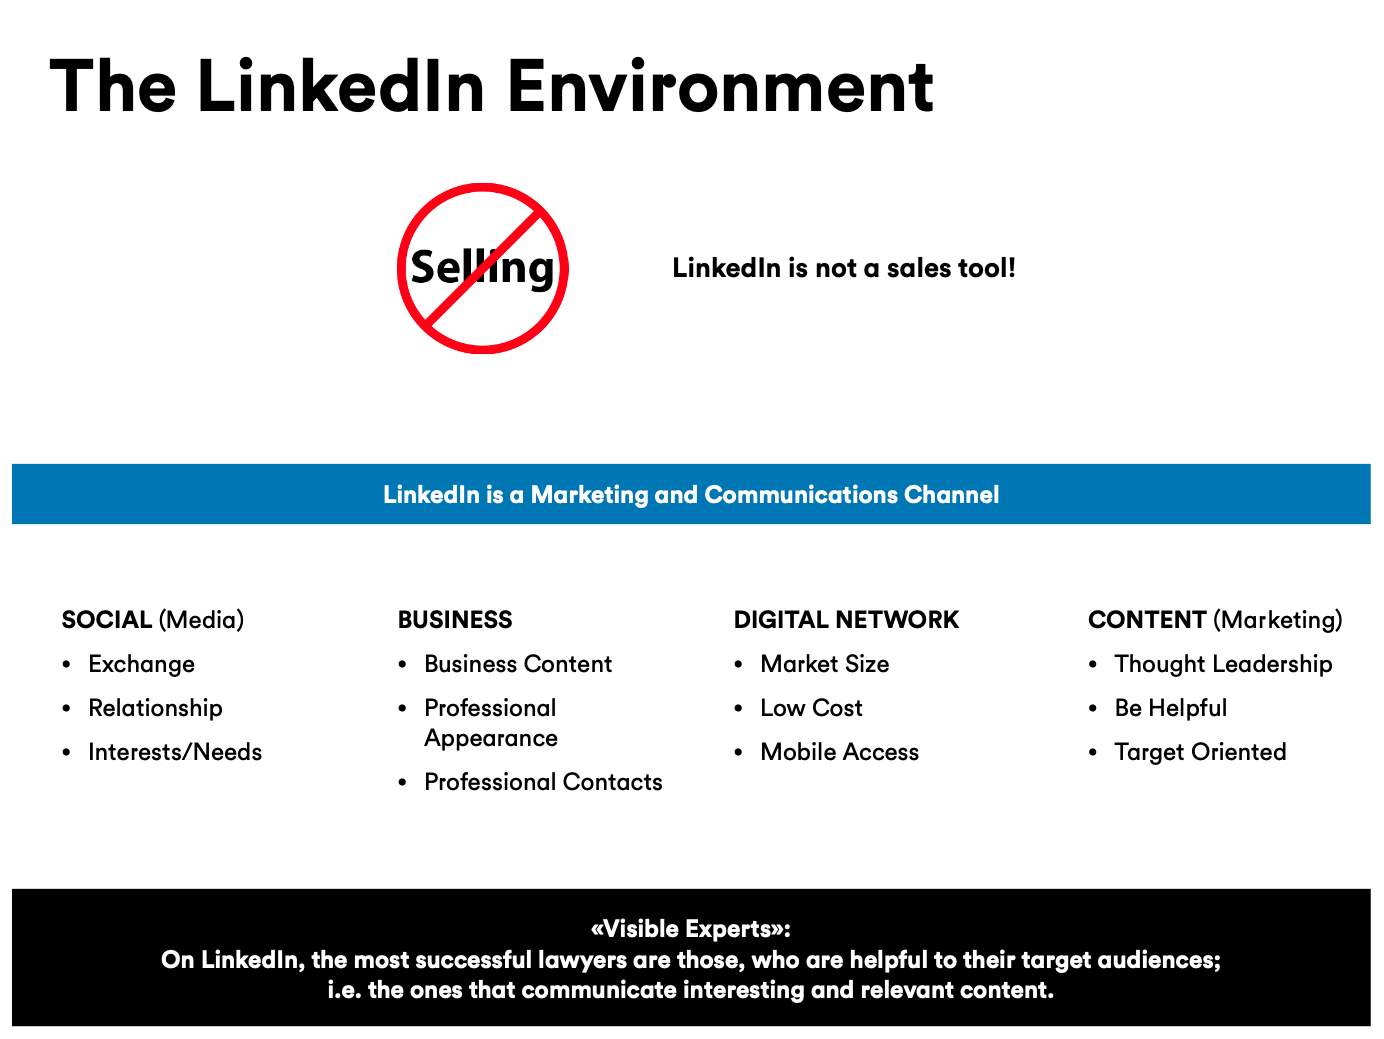 LinkedIn Anwalt Kanzlei Lawyer Marketing digital HeadStarterz Tobias Steinemann Philipp Roth Social Media Kommunikation